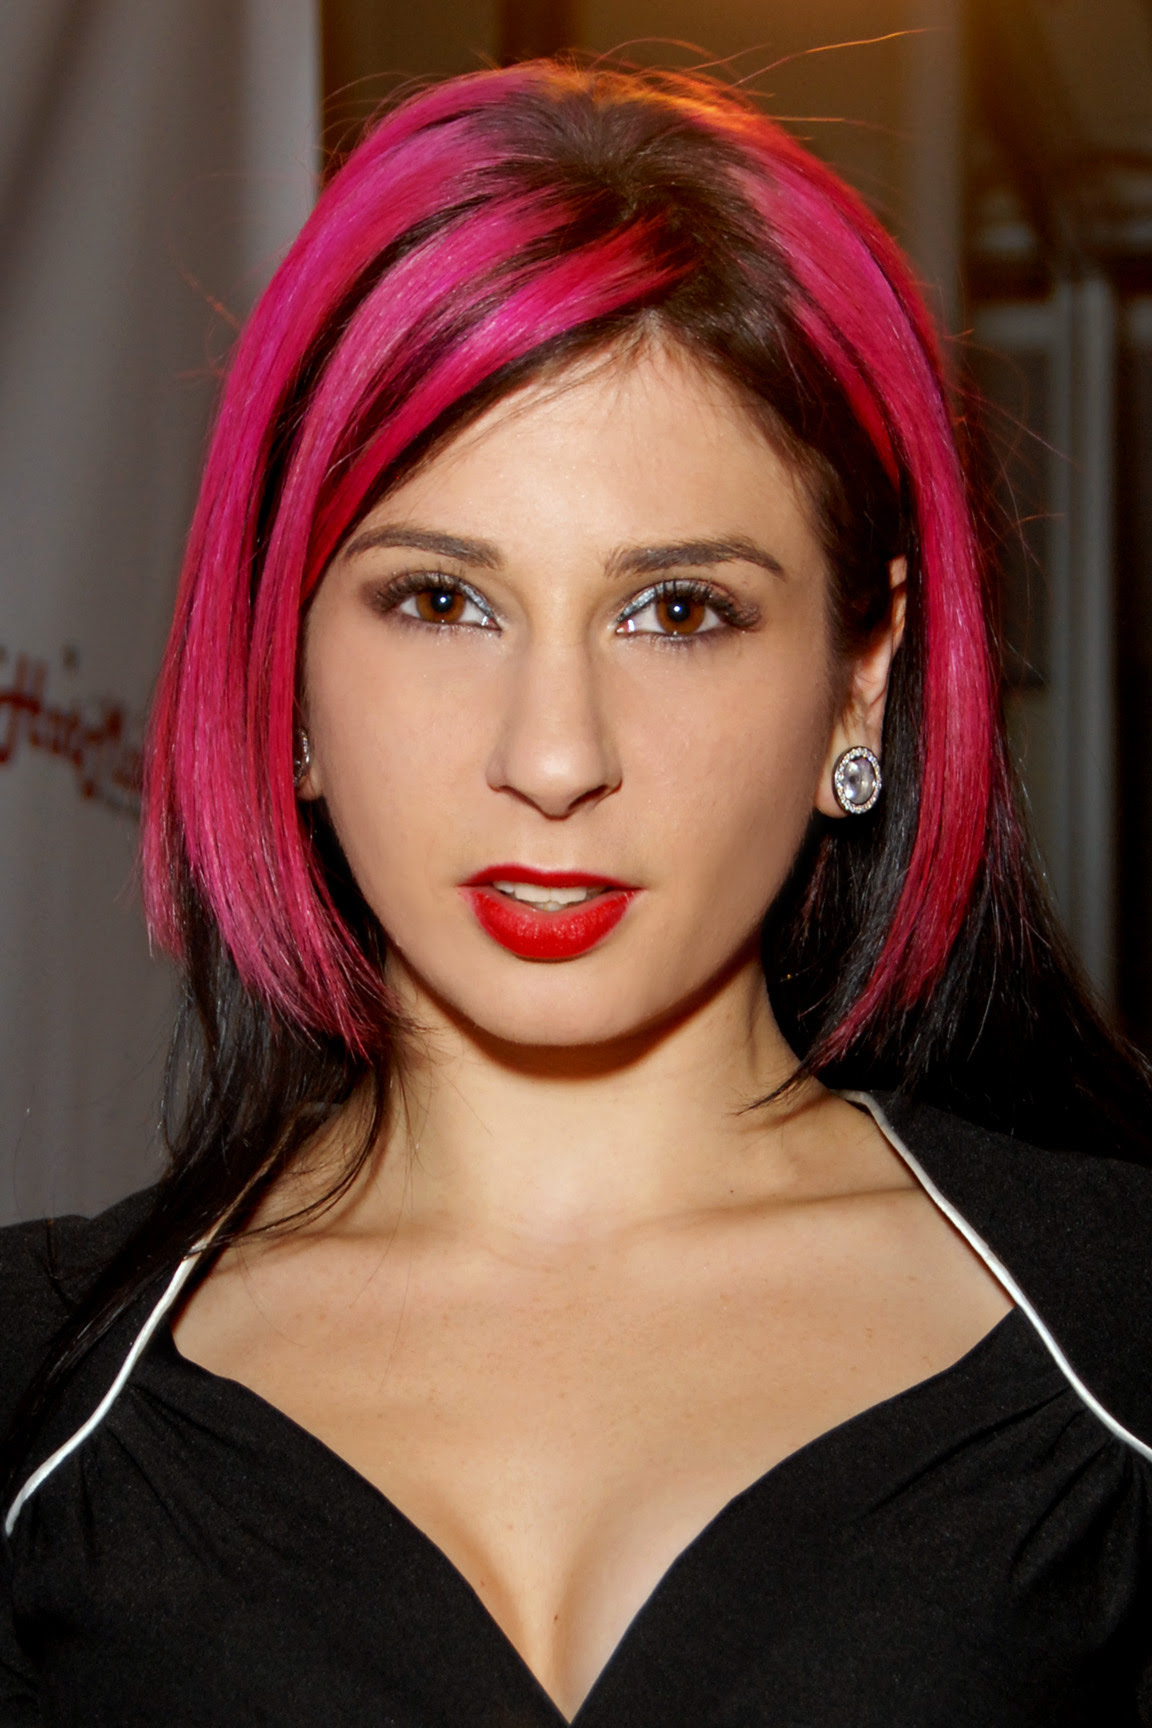 http://upload.wikimedia.org/wikipedia/commons/c/c0/Joanna_Angel_2009.jpg